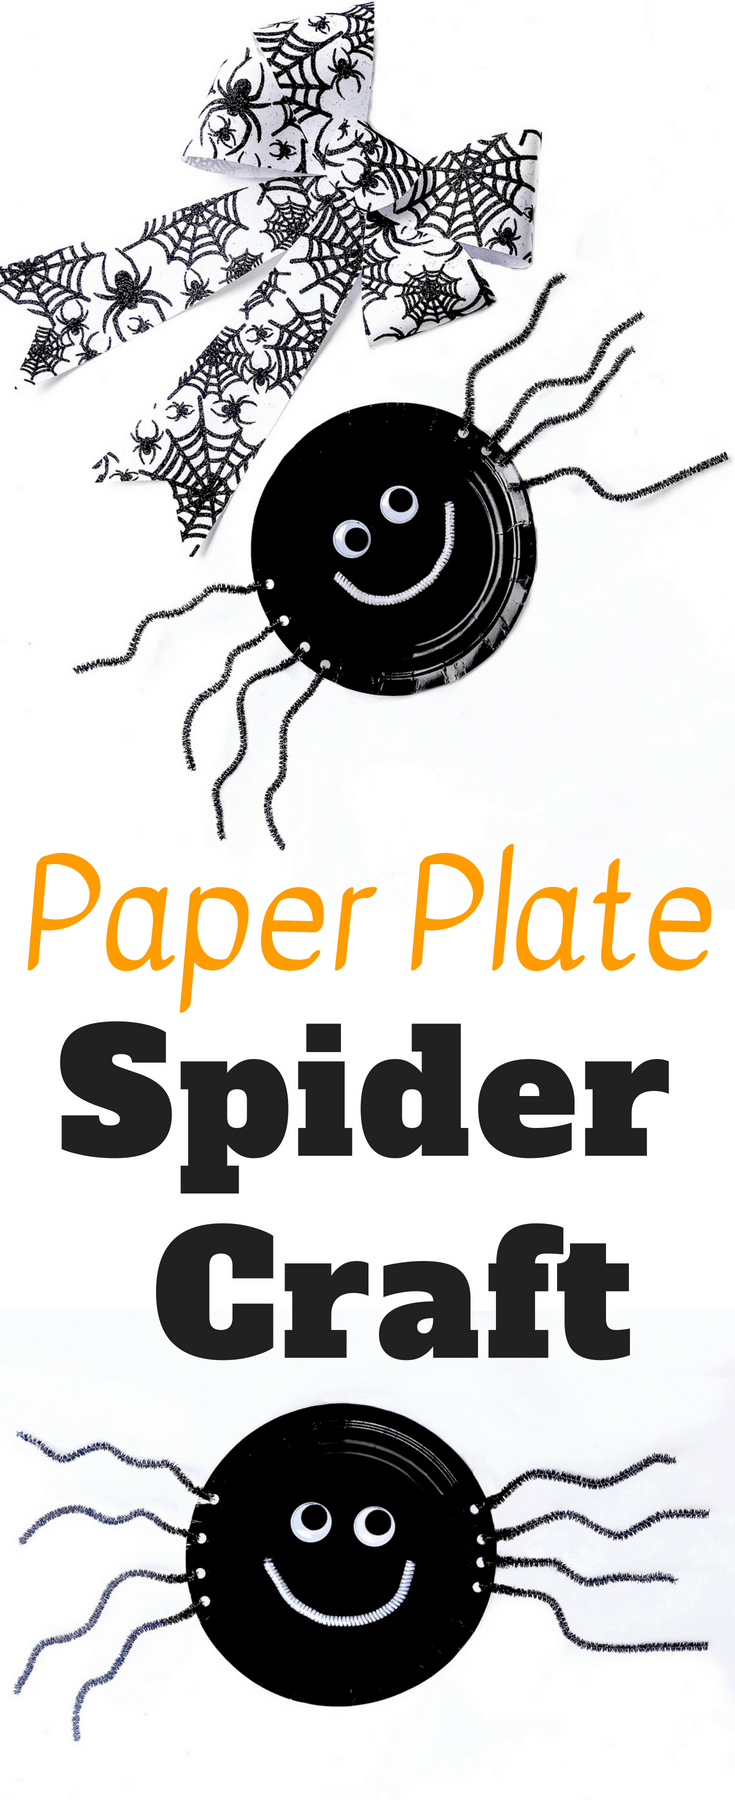 Close up of a spider craft supplies and text